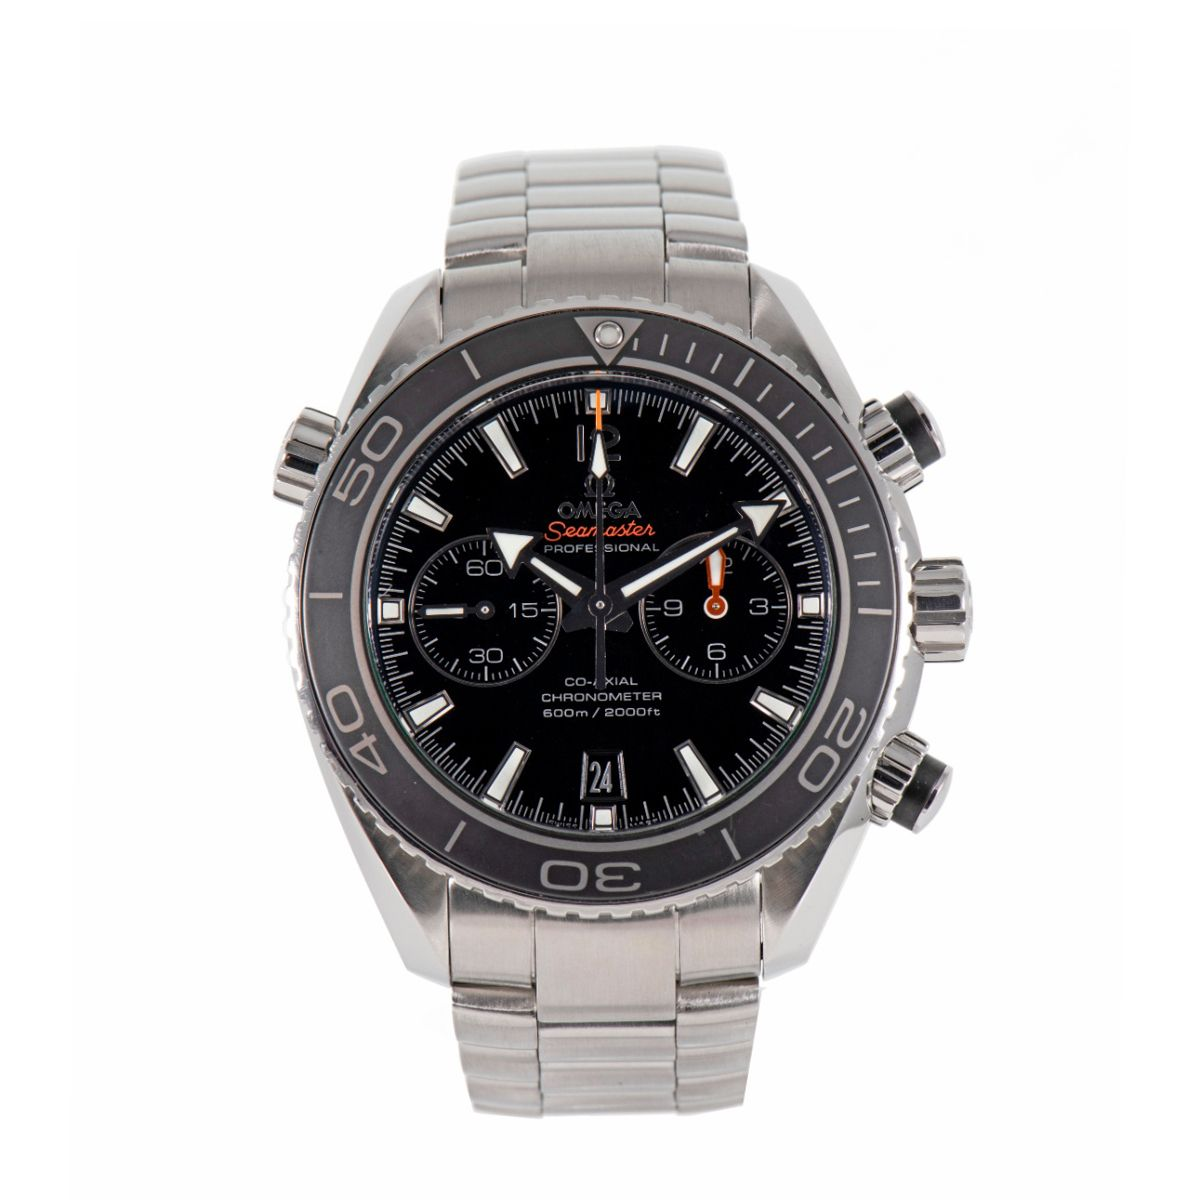 Omega Seamaster Planet Ocean 232.30.46.51.01.001 Chronograph Mens Watch